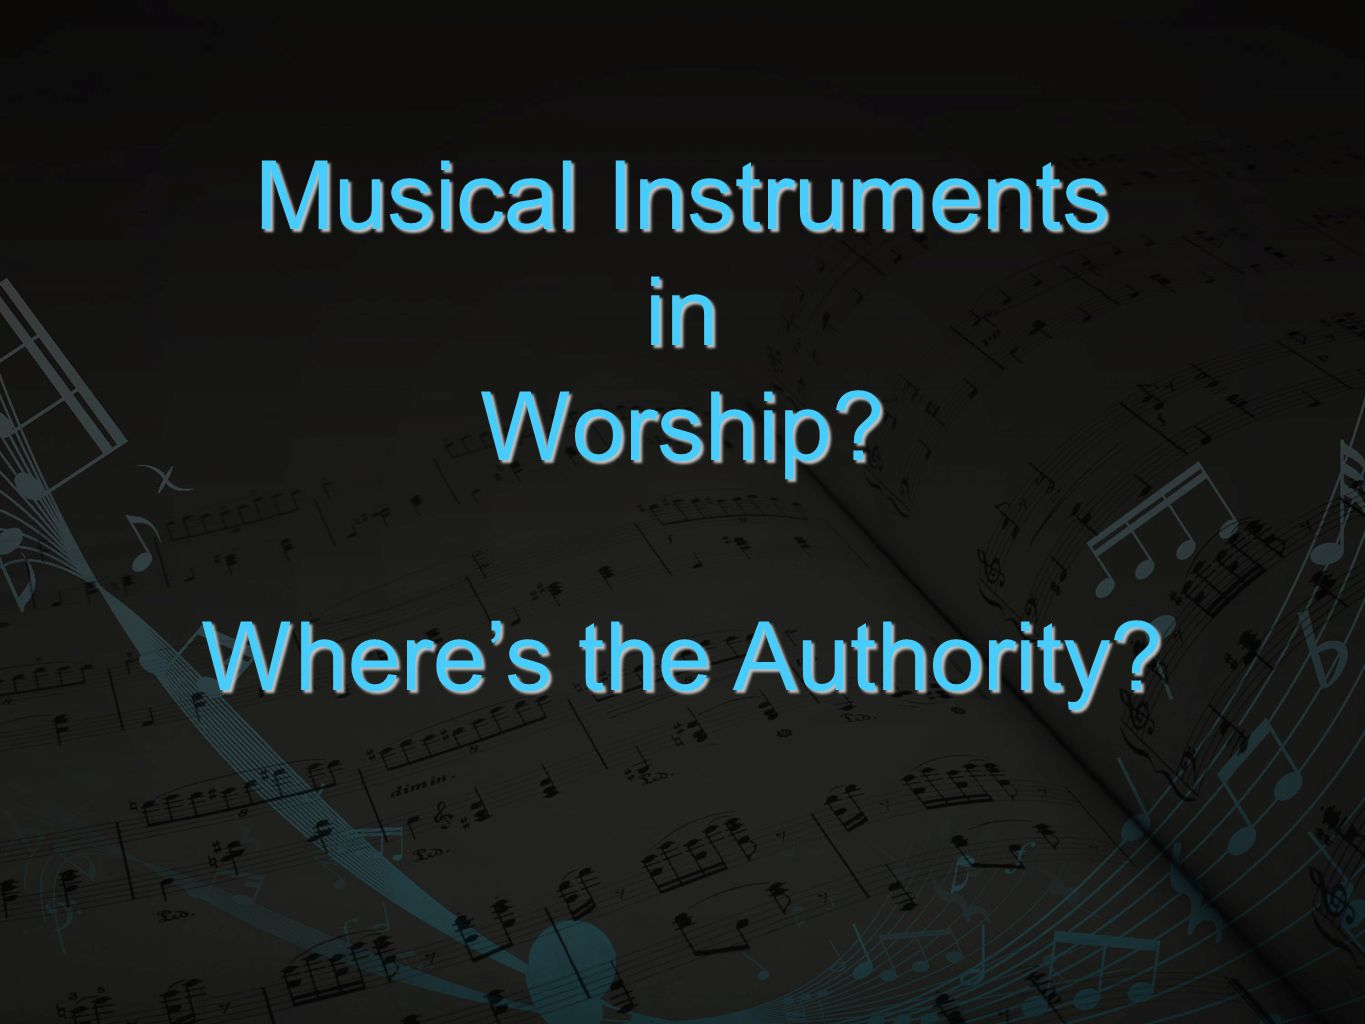 Musical Instruments inWorship Where's the Authority